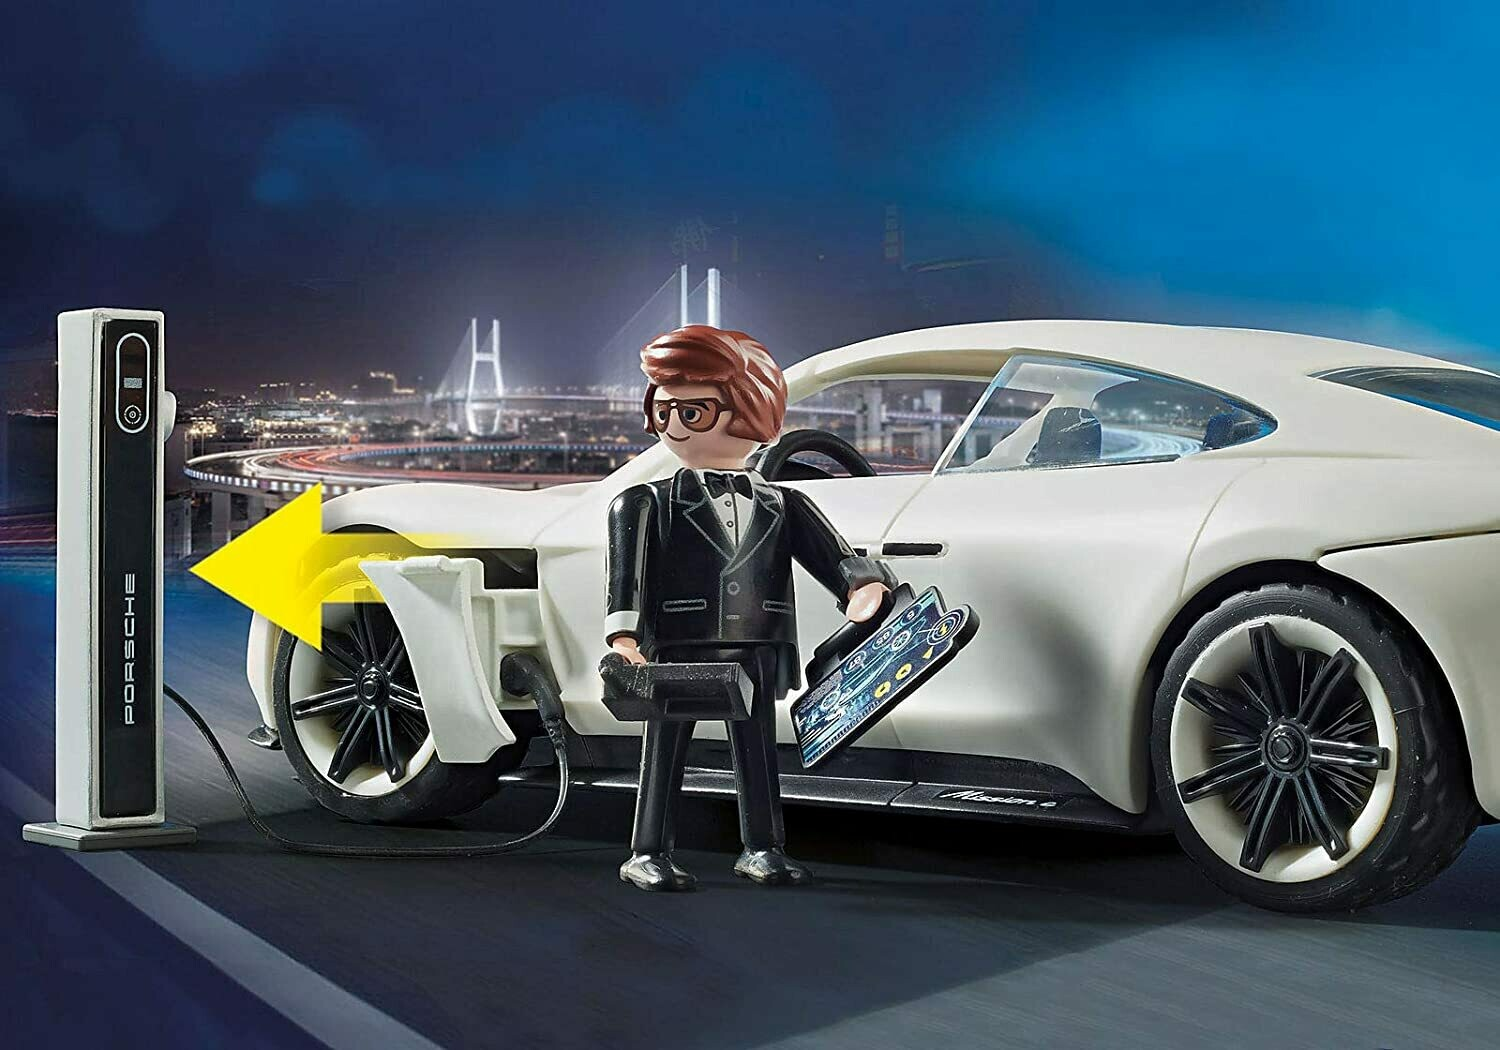 Playmobil; Playmobil: The Movie Rex Dasher's Porsche Mission E